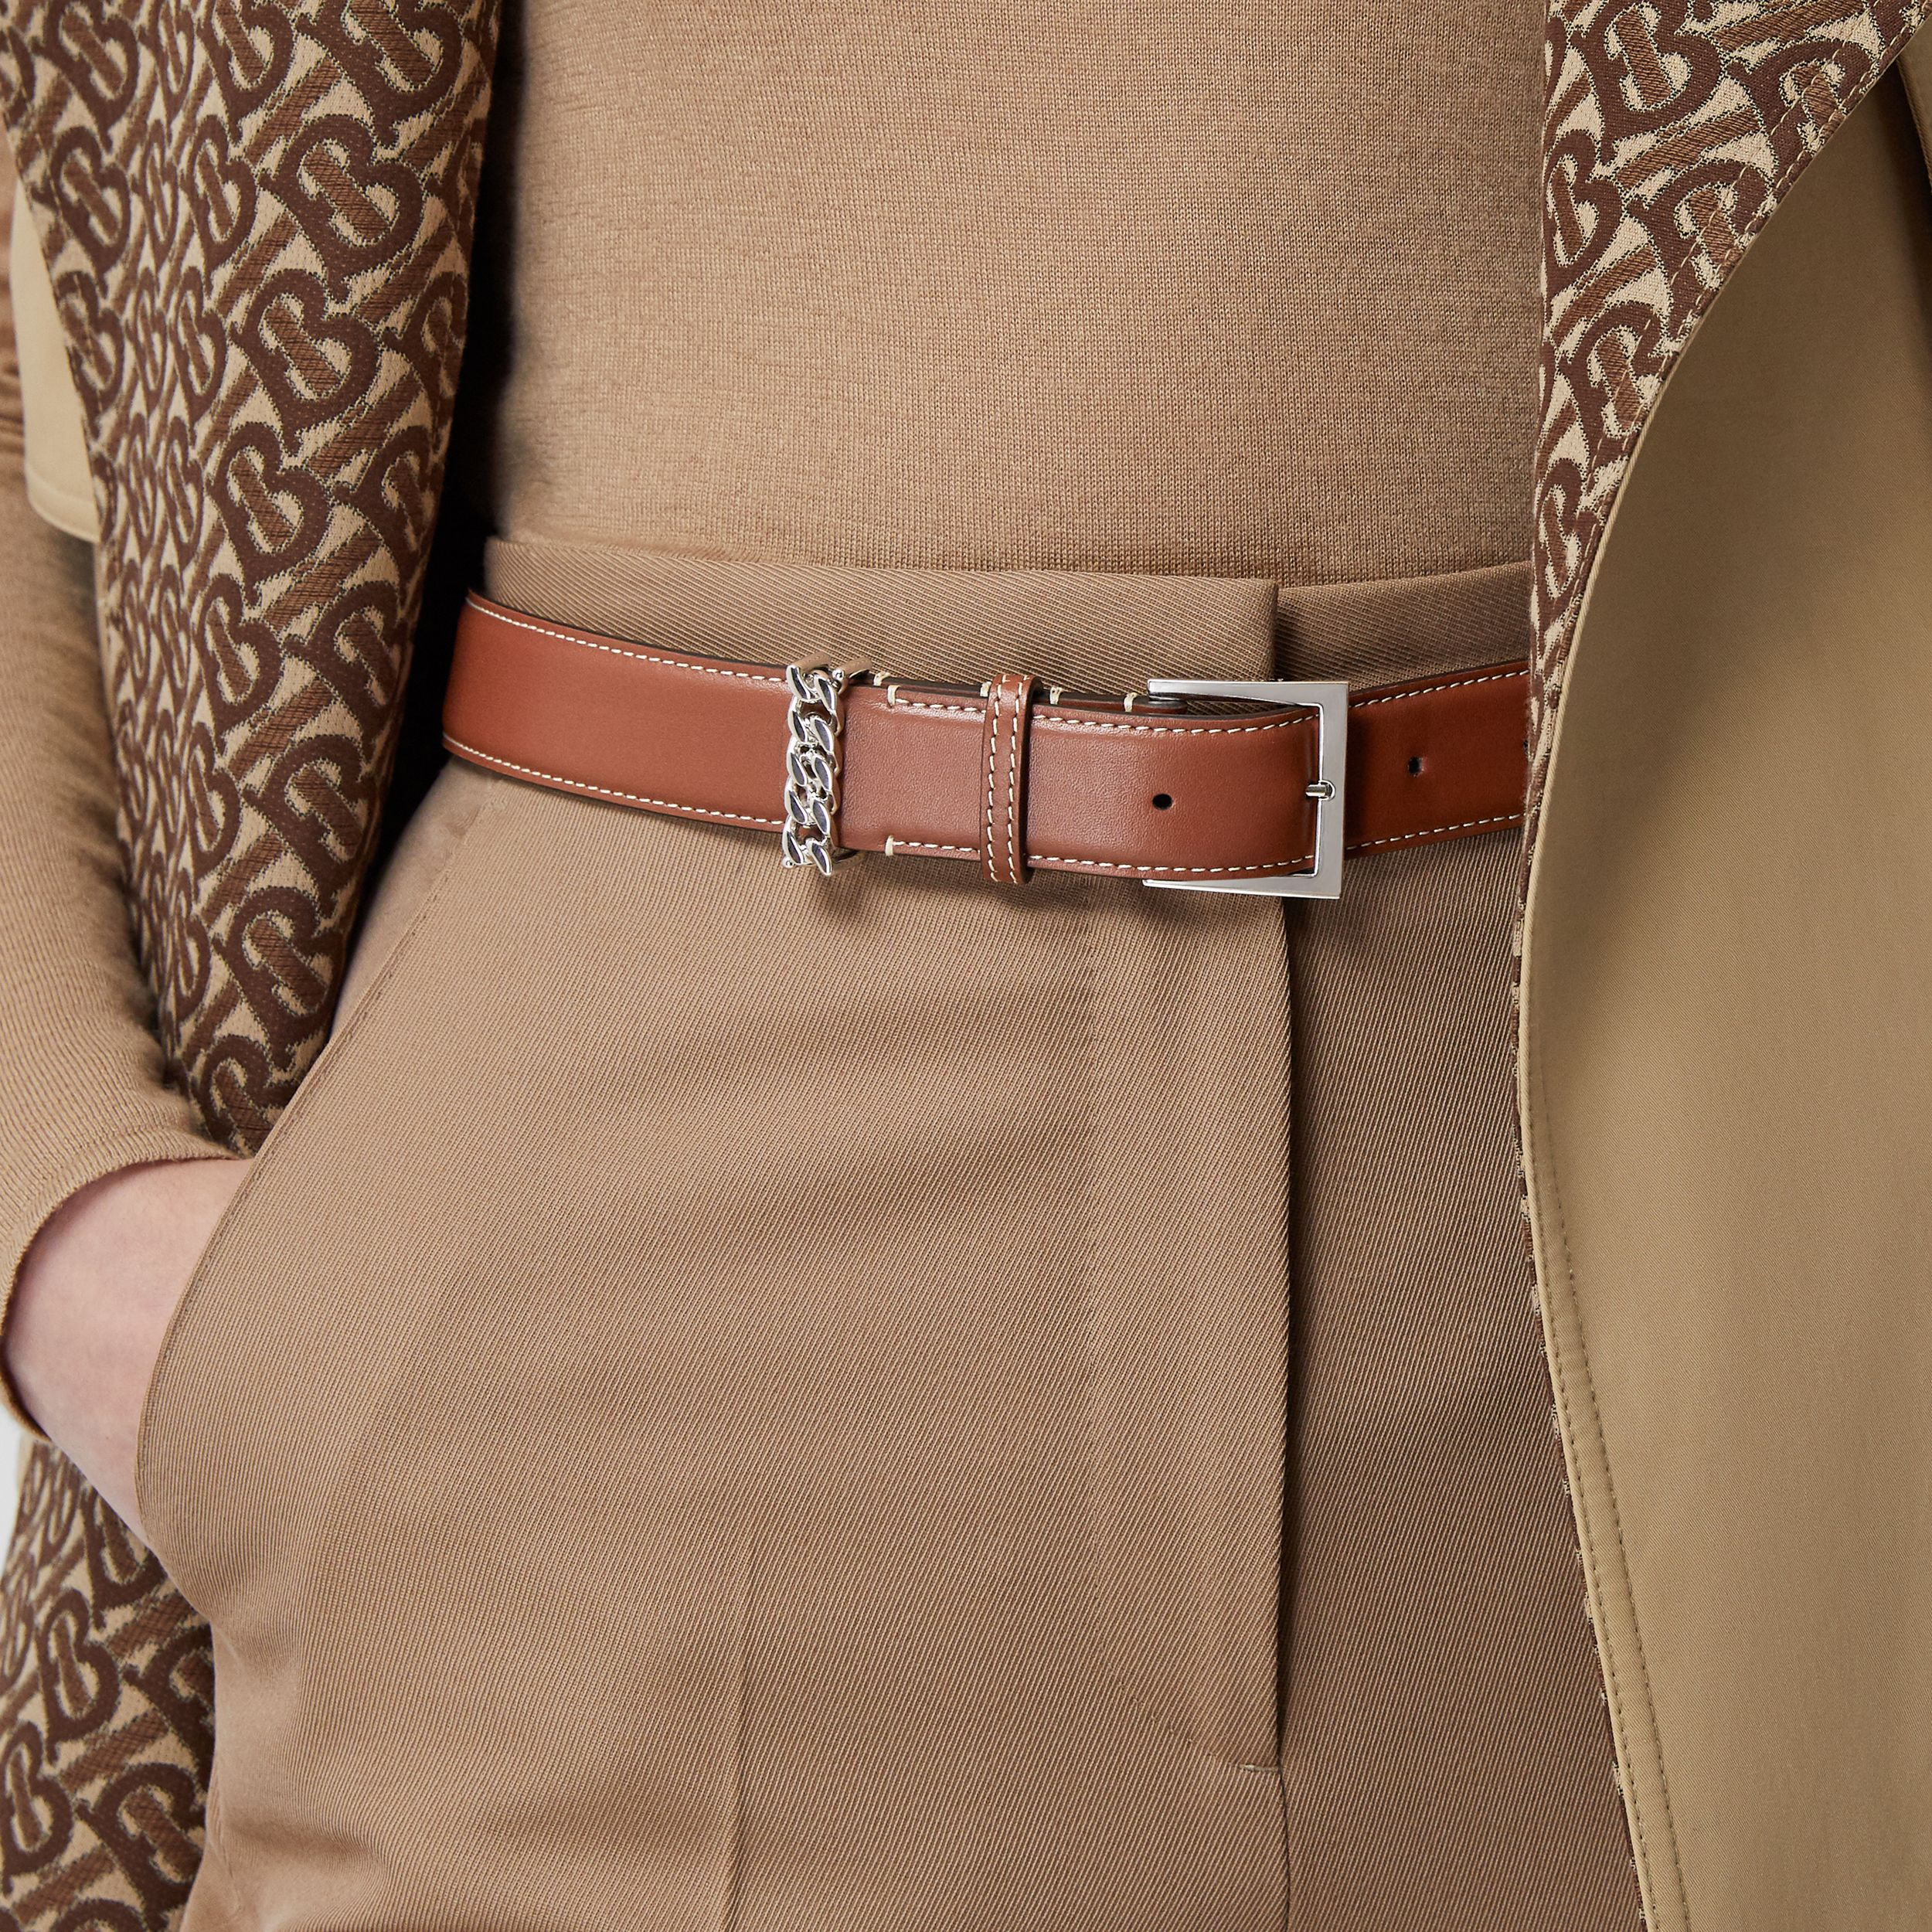 Chain Detail Topstitched Leather Belt in Tan/ecru - Women | Burberry Hong Kong S.A.R. - 3